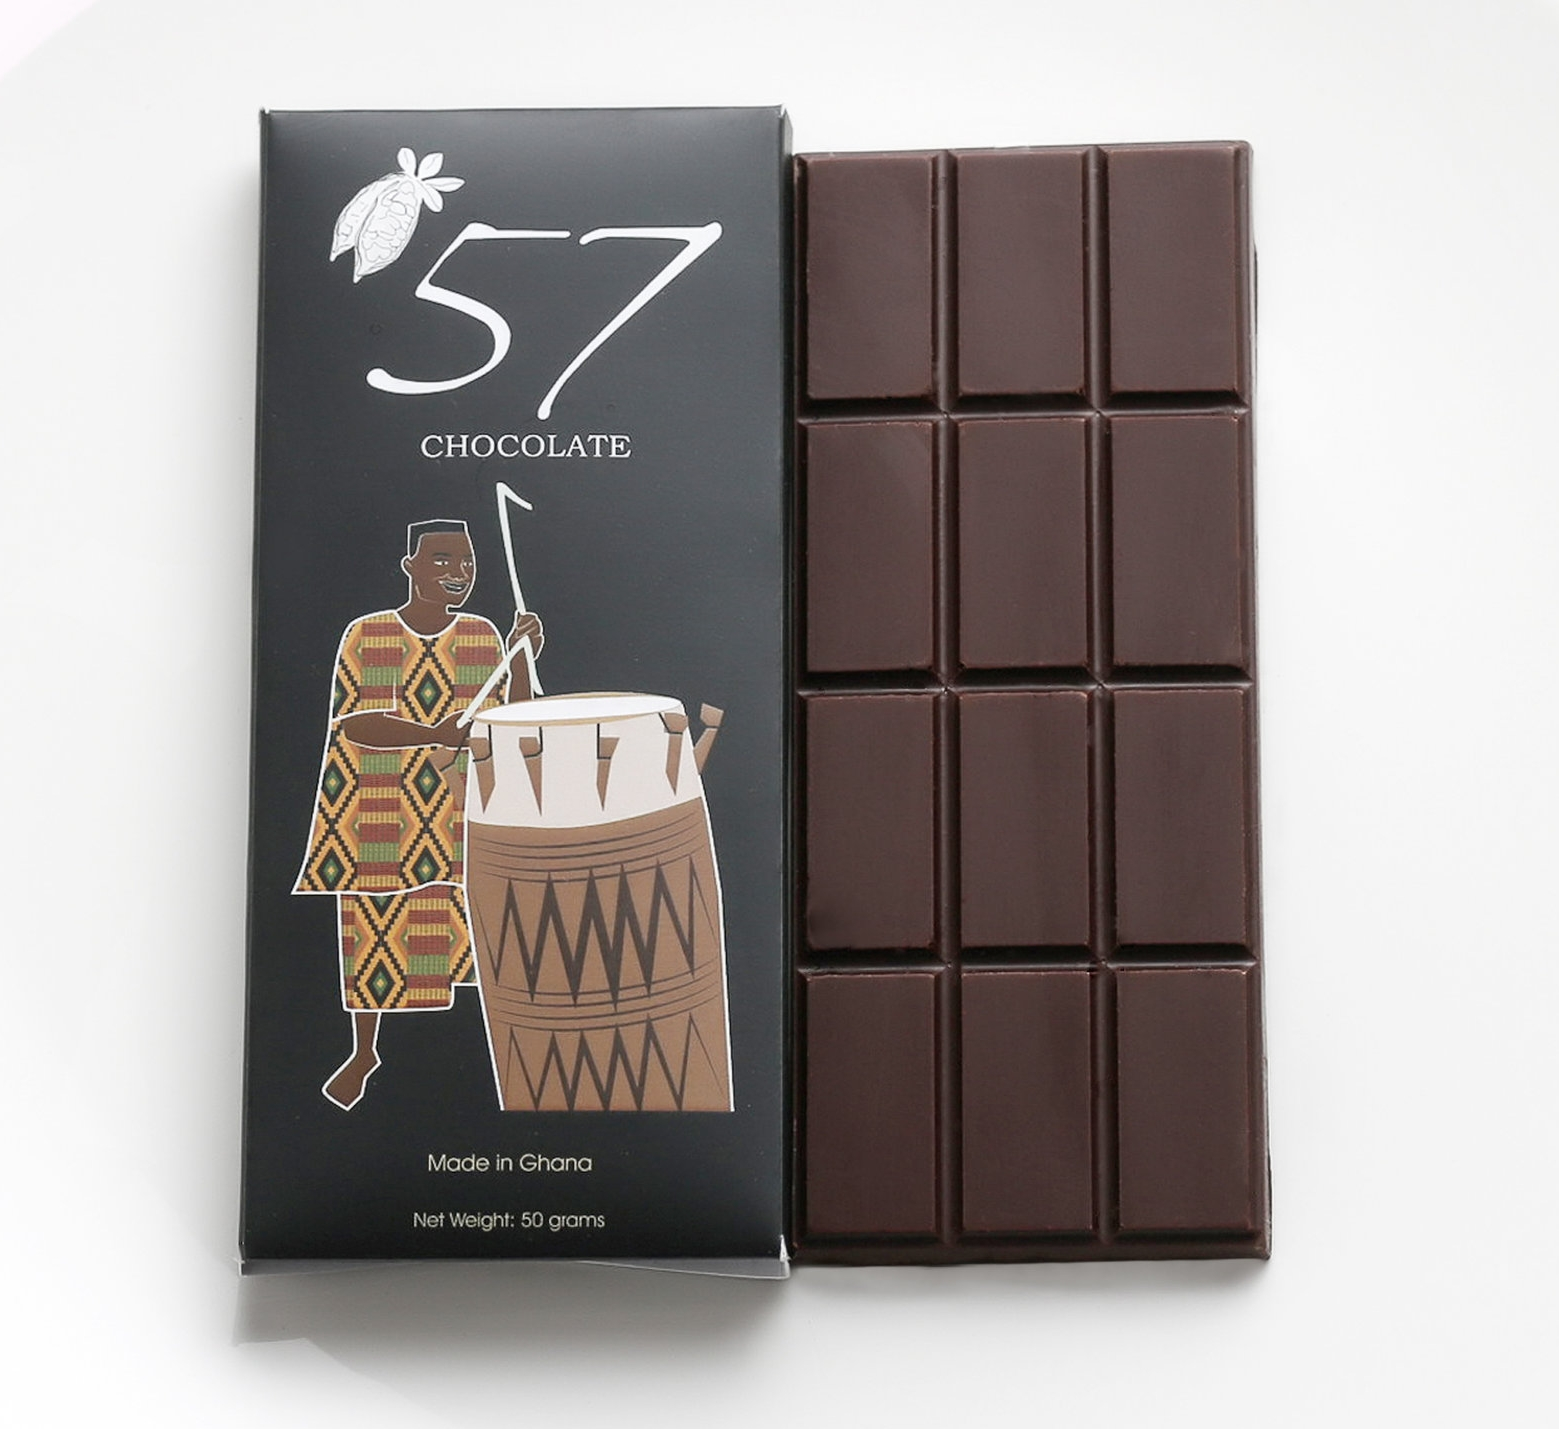 73 percent dark chocolate (50 grams)